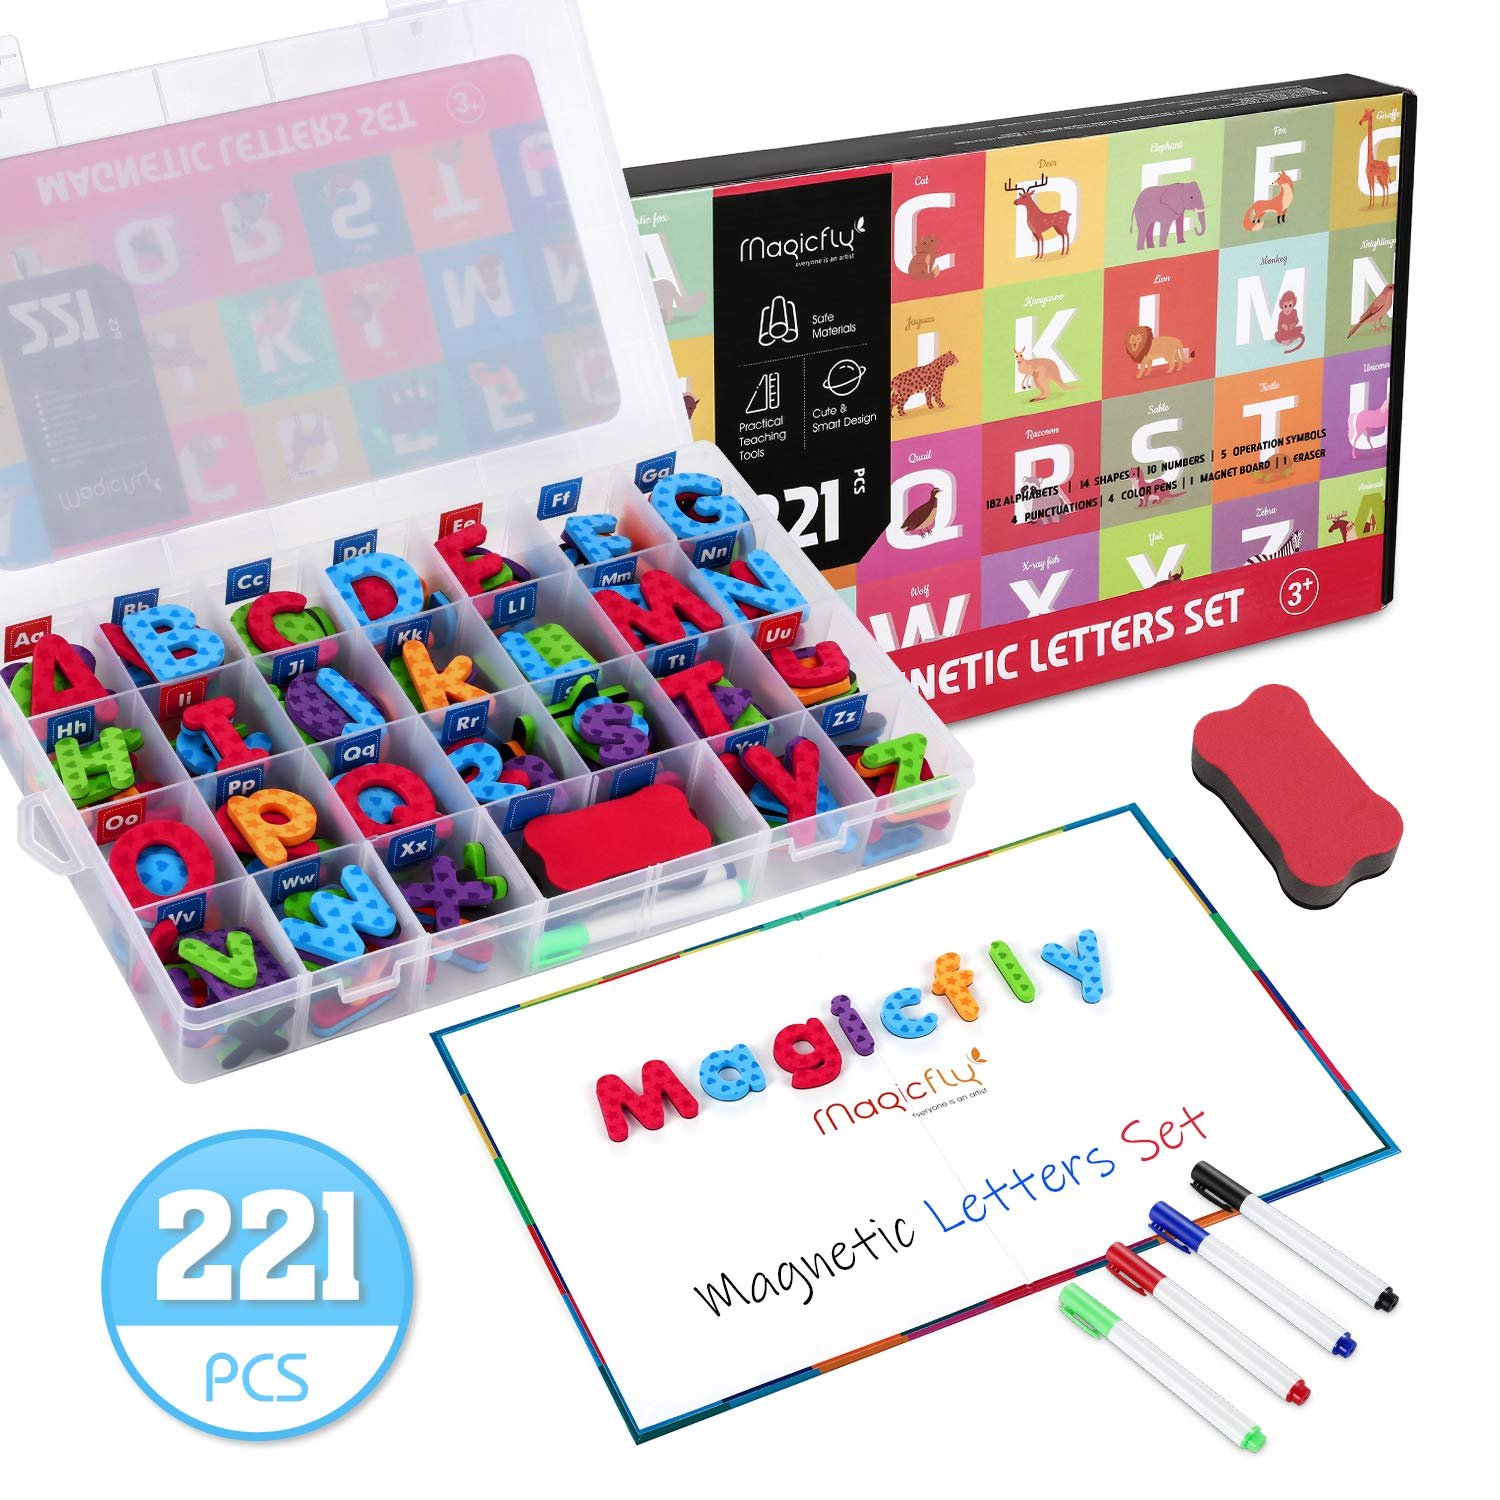 Magicfly 221 PCS Magnetic Letters Kit with Foldable Magnet Board & Storage Box, Classroom Foam Alphabet Letters Number Magnet with Double Sides Dry Erase Board for Kids Spelling and Learning